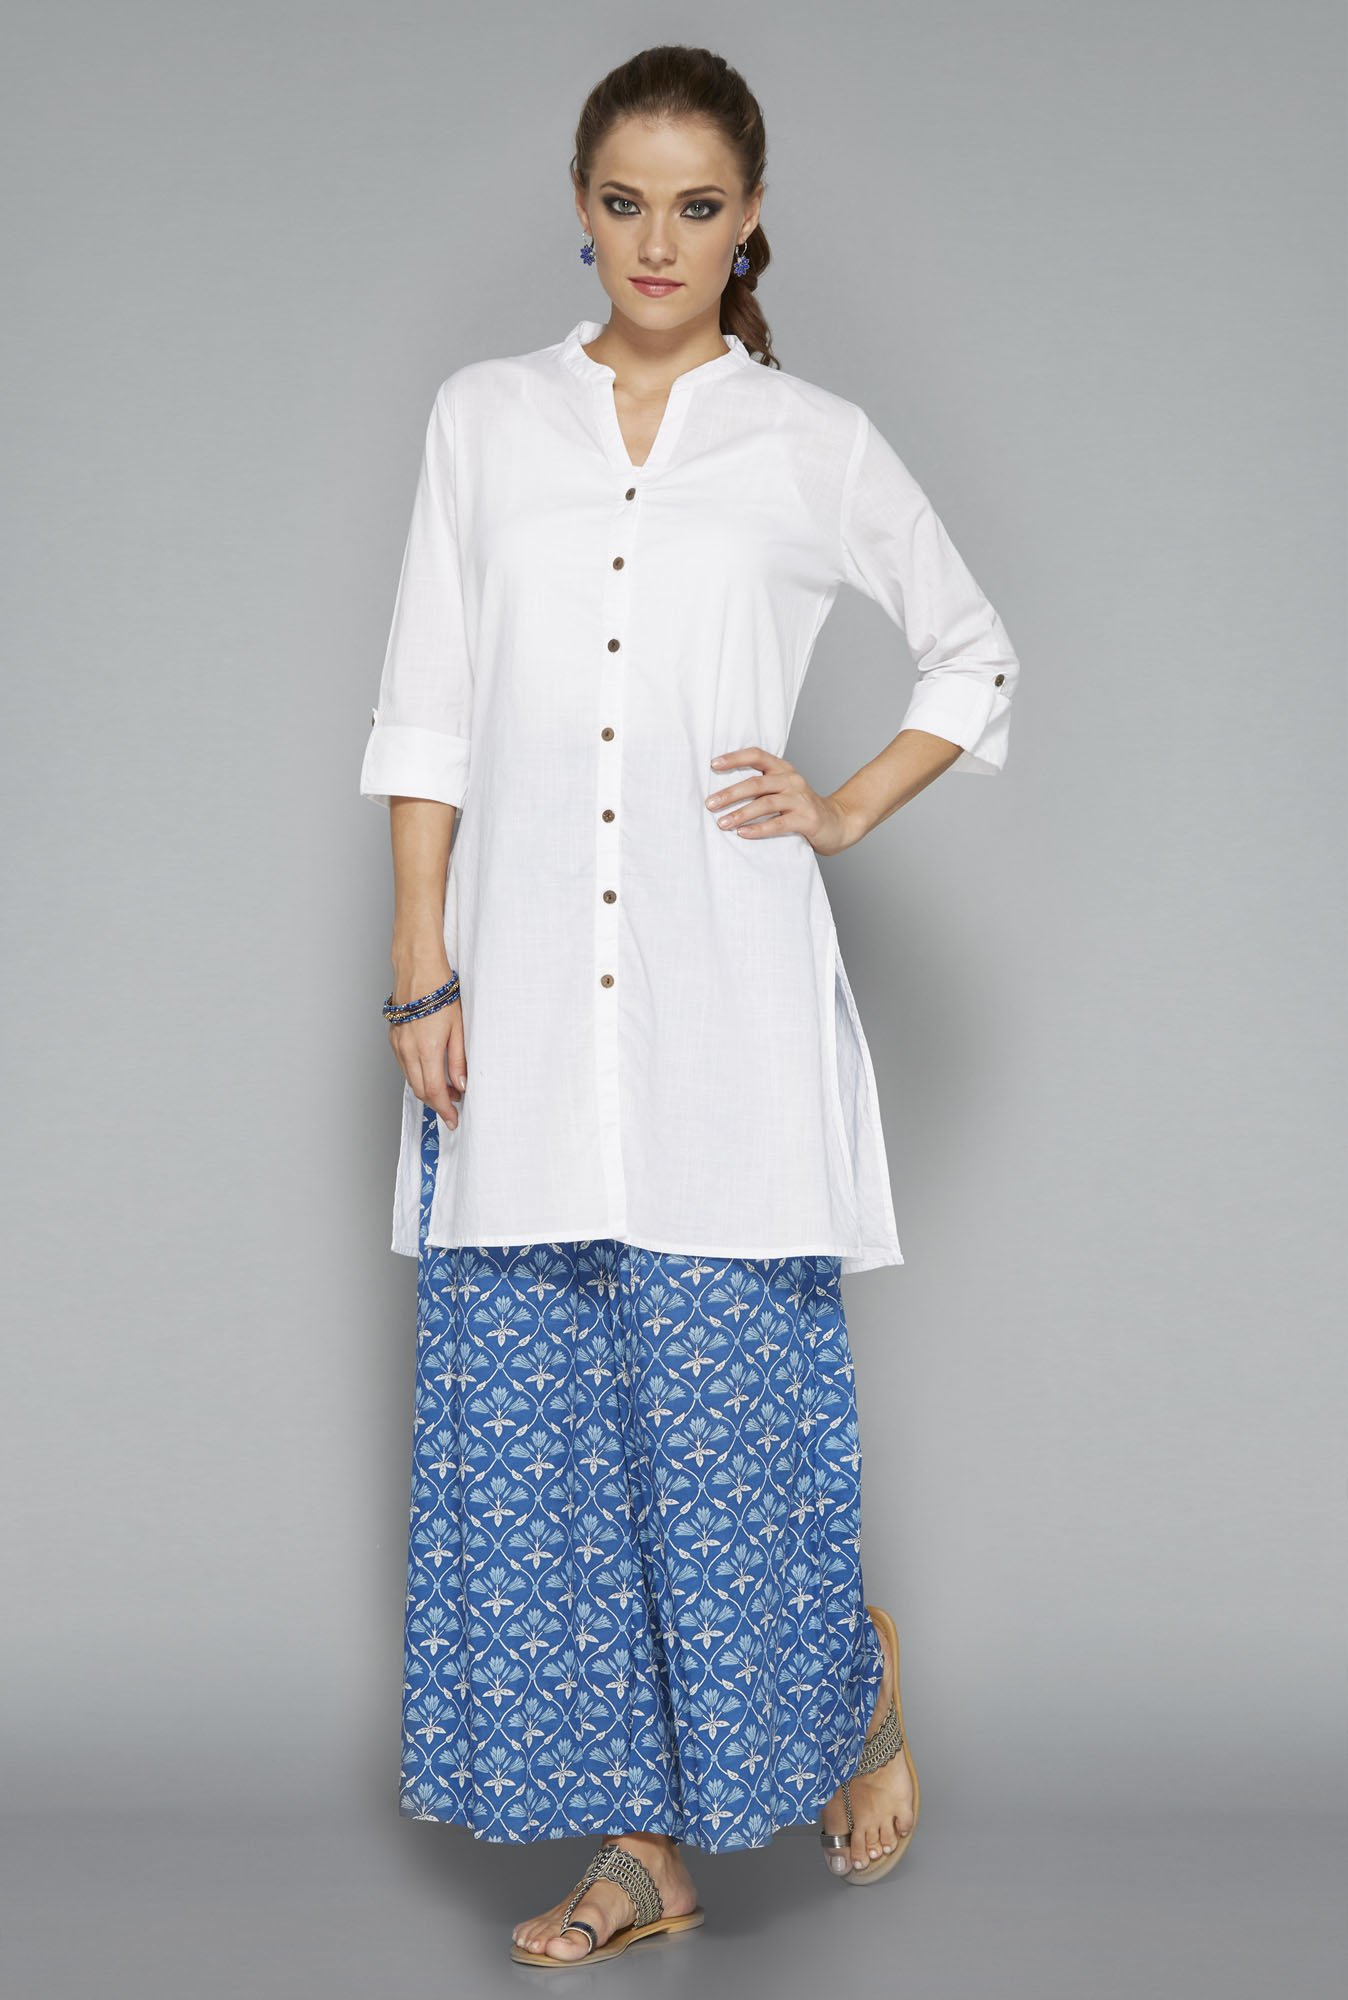 Utsa by Westside White Solid Kurti